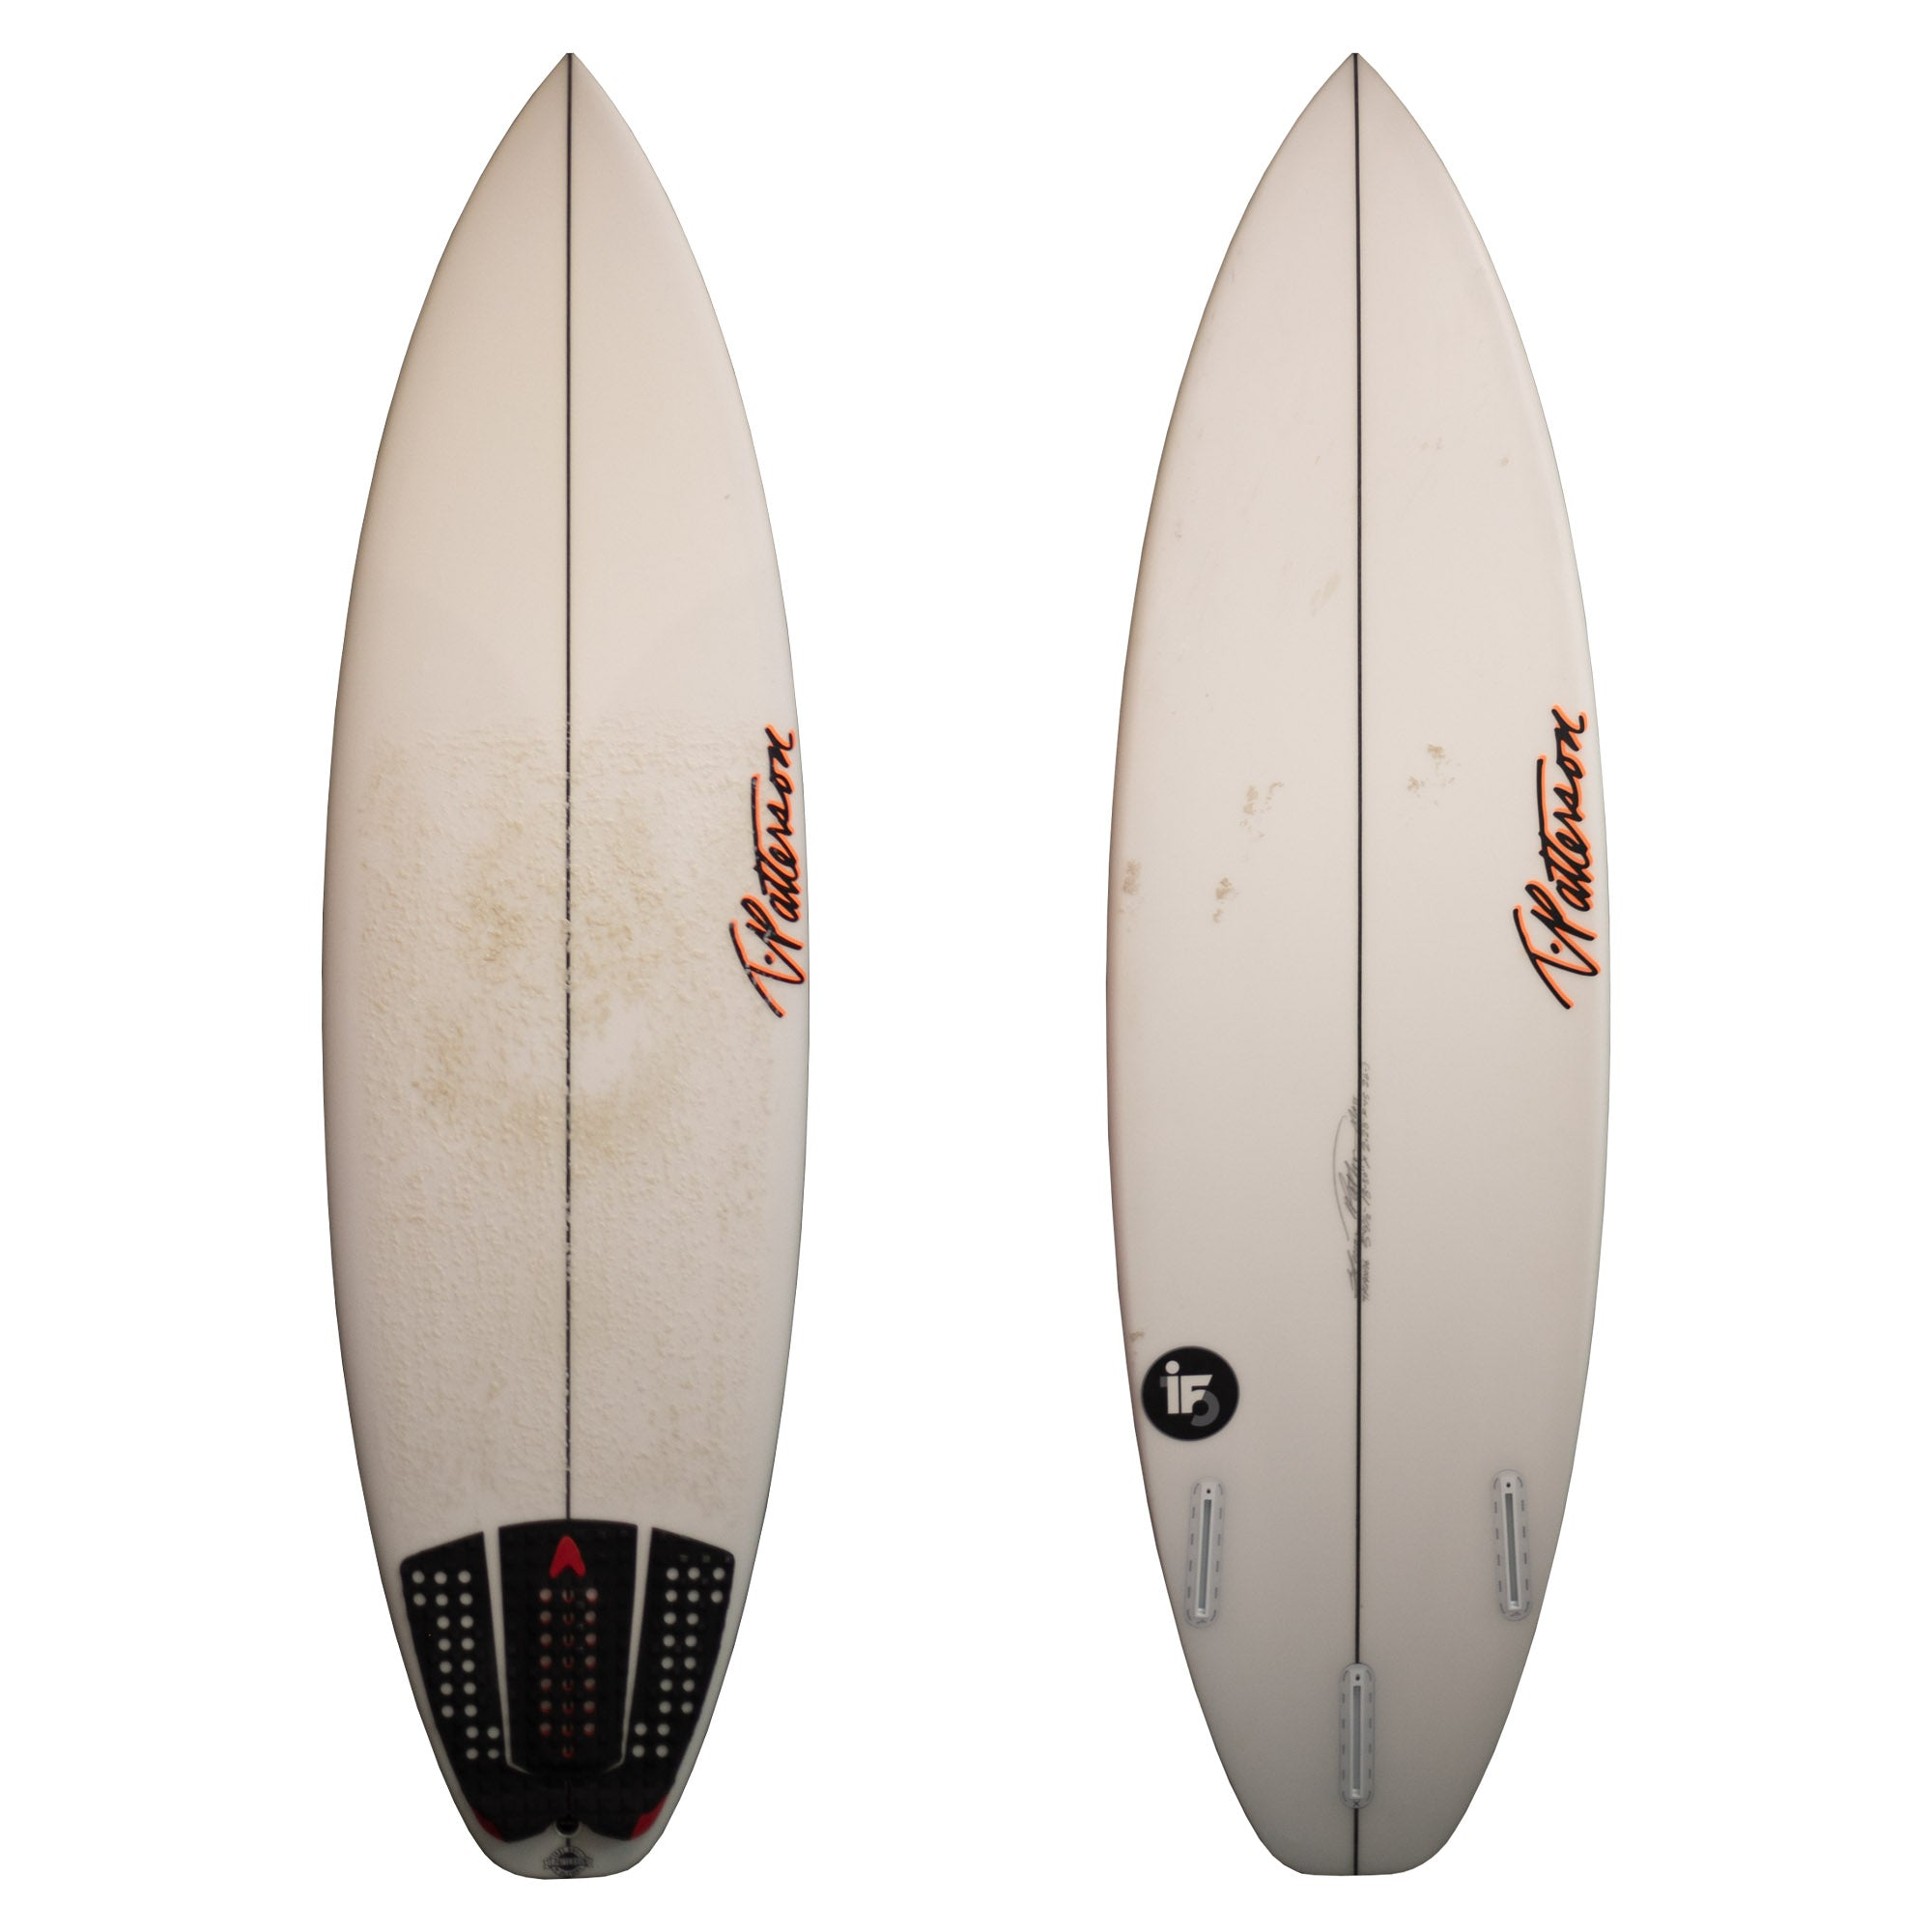 "T. Patterson IF-15 5'9 1/2"" Used Surfboard"